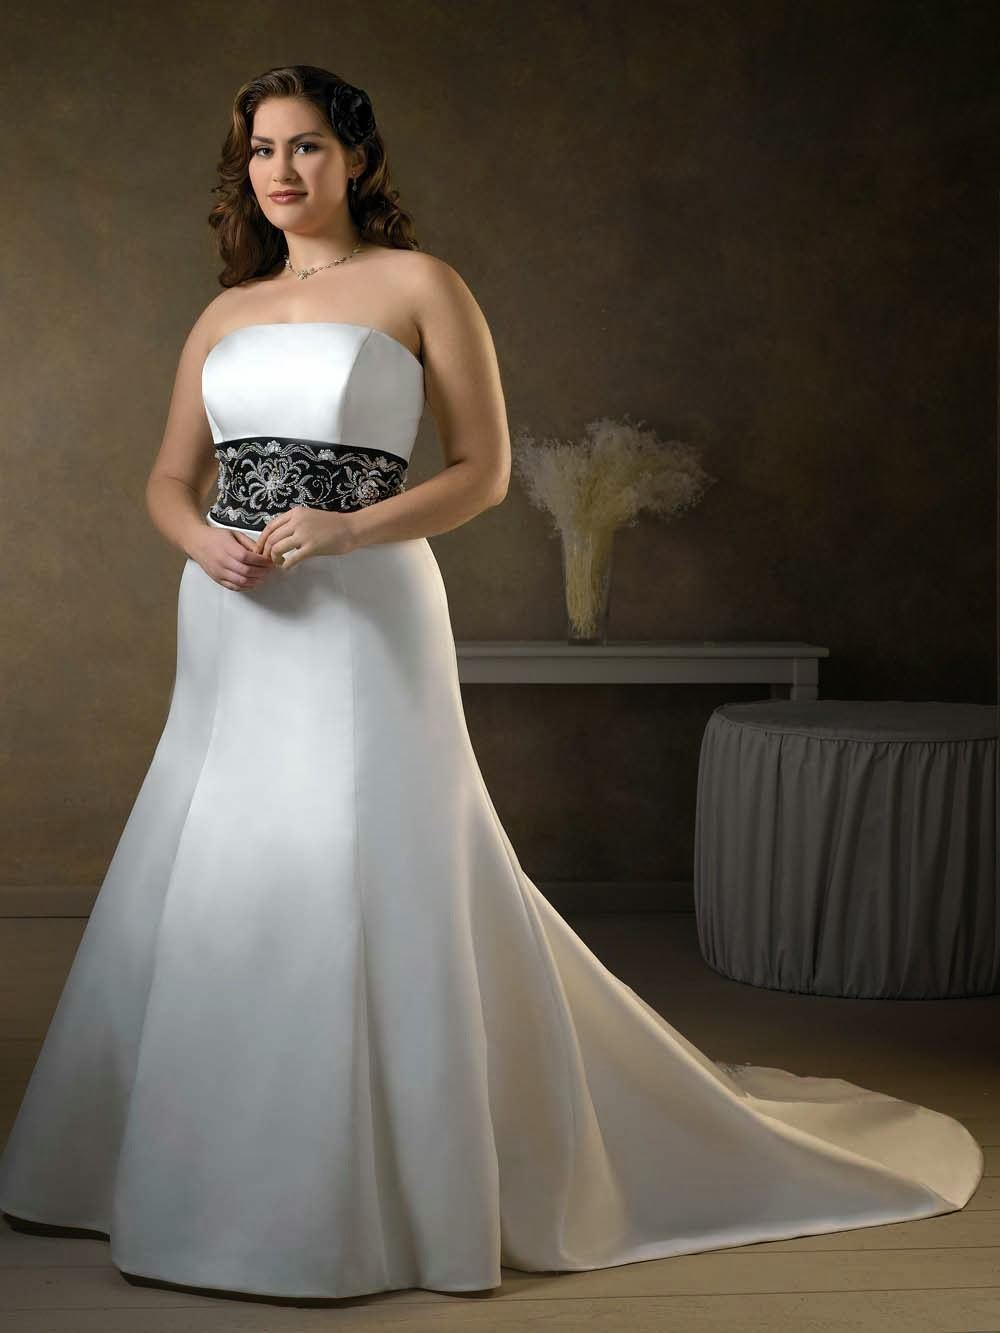 used wedding gown get high quality plus size dress with On wedding dresses for cheap plus size